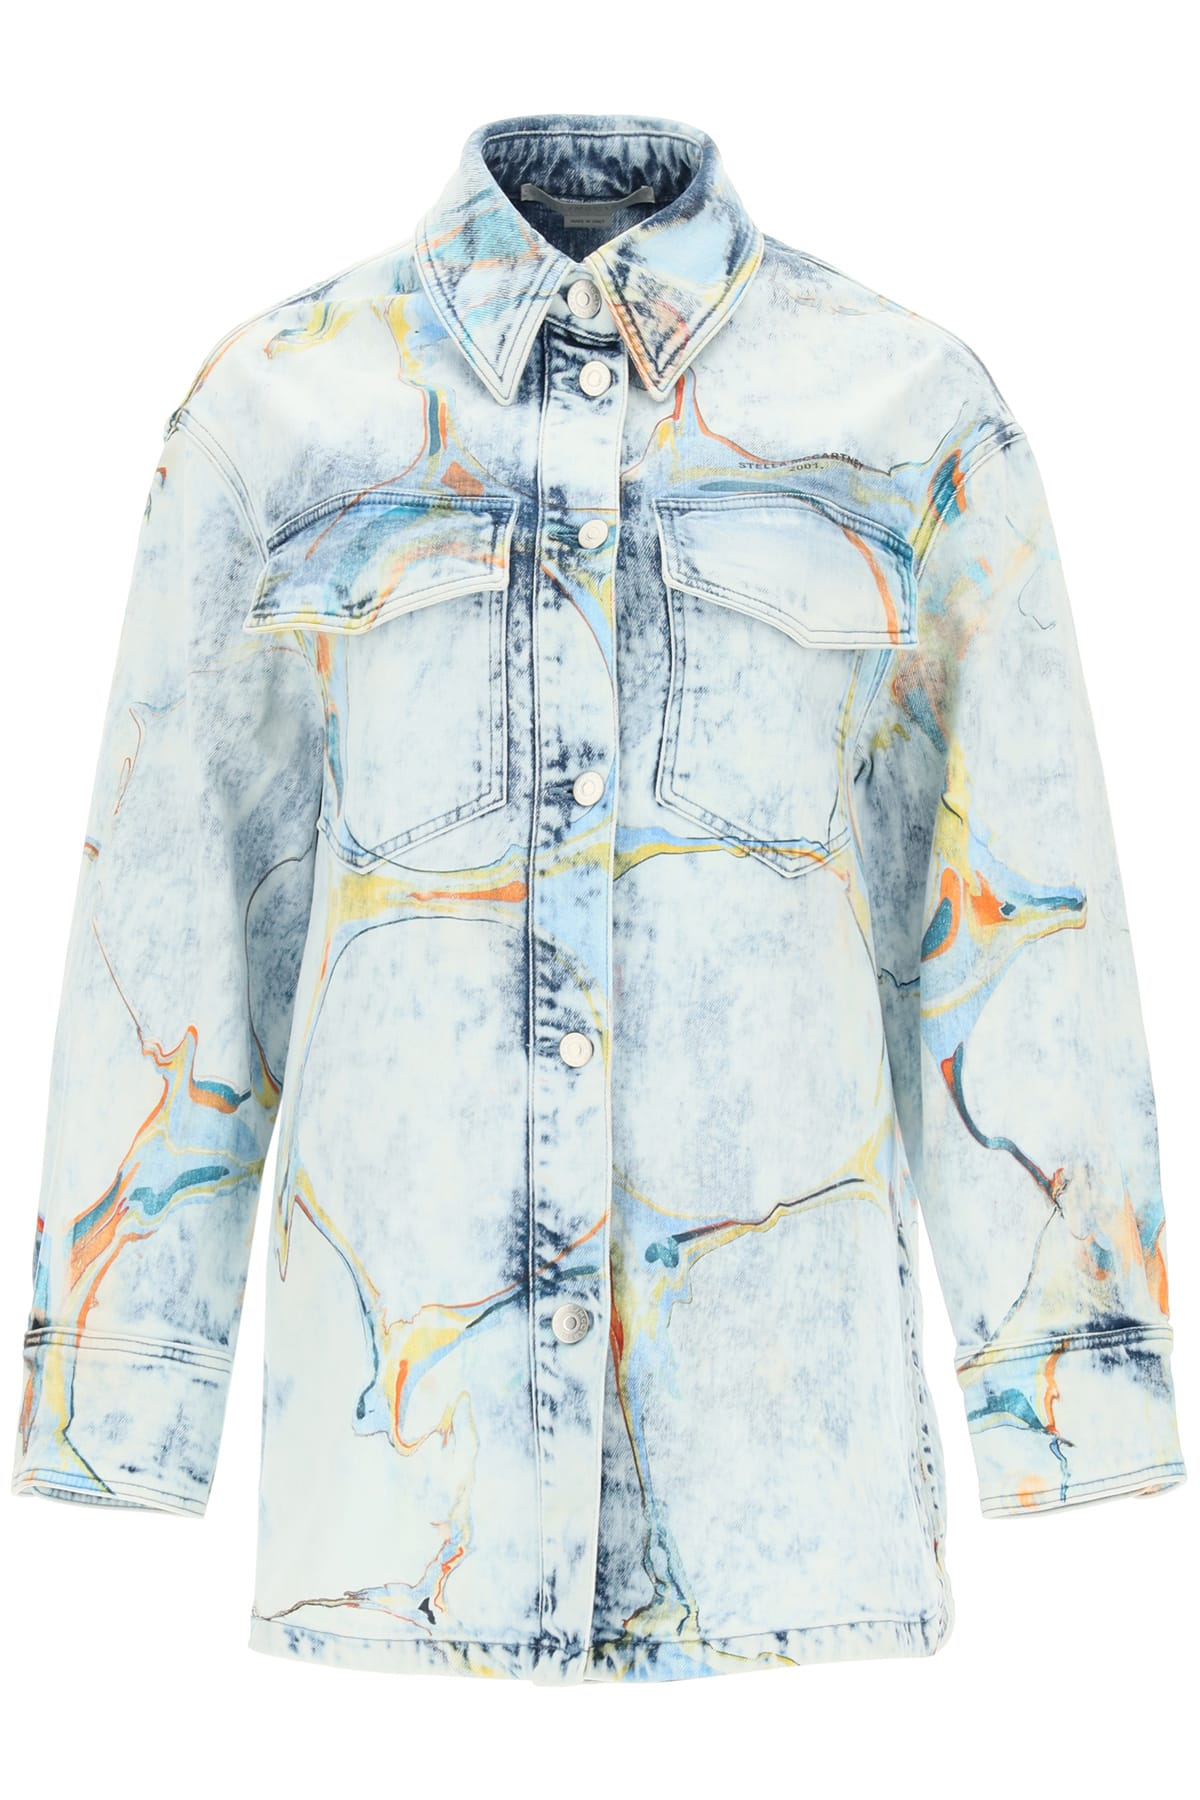 Stella Mccartney DENIM SHIRT-JACKET WITH MARBLED PRINT